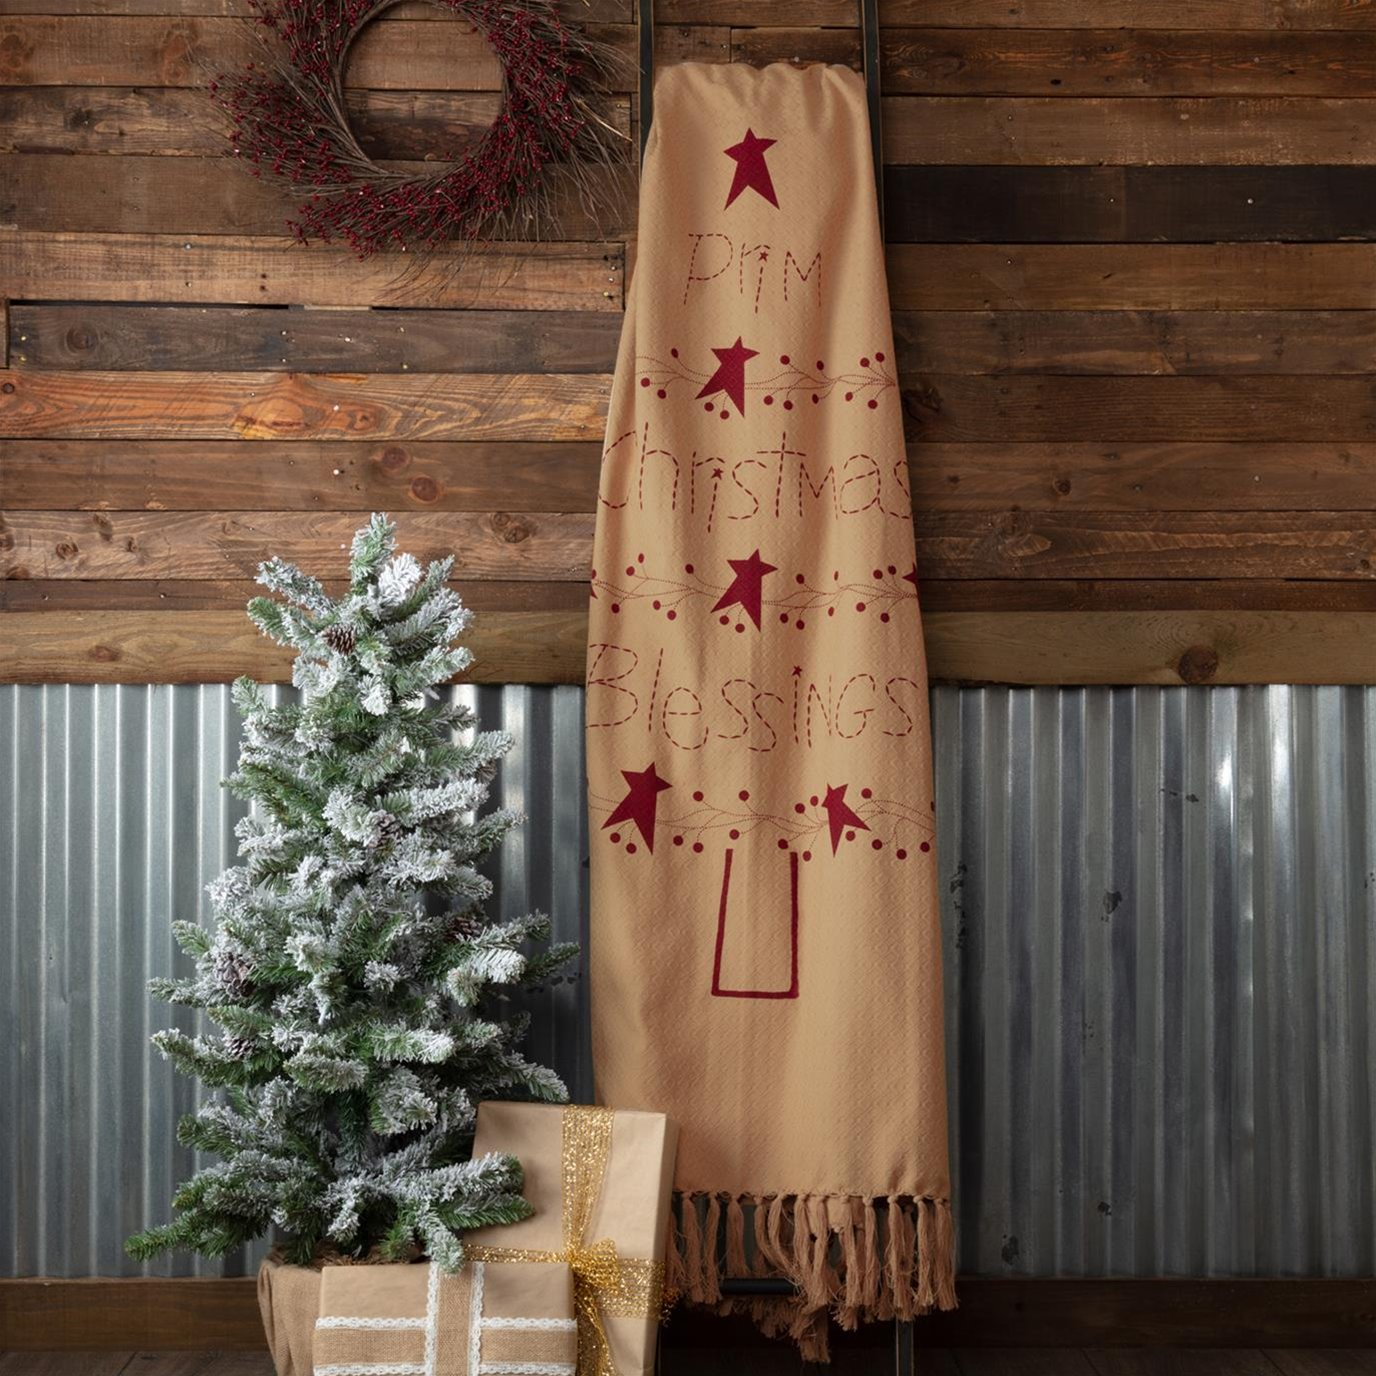 Prim Christmas Blessings Woven Throw 60x50